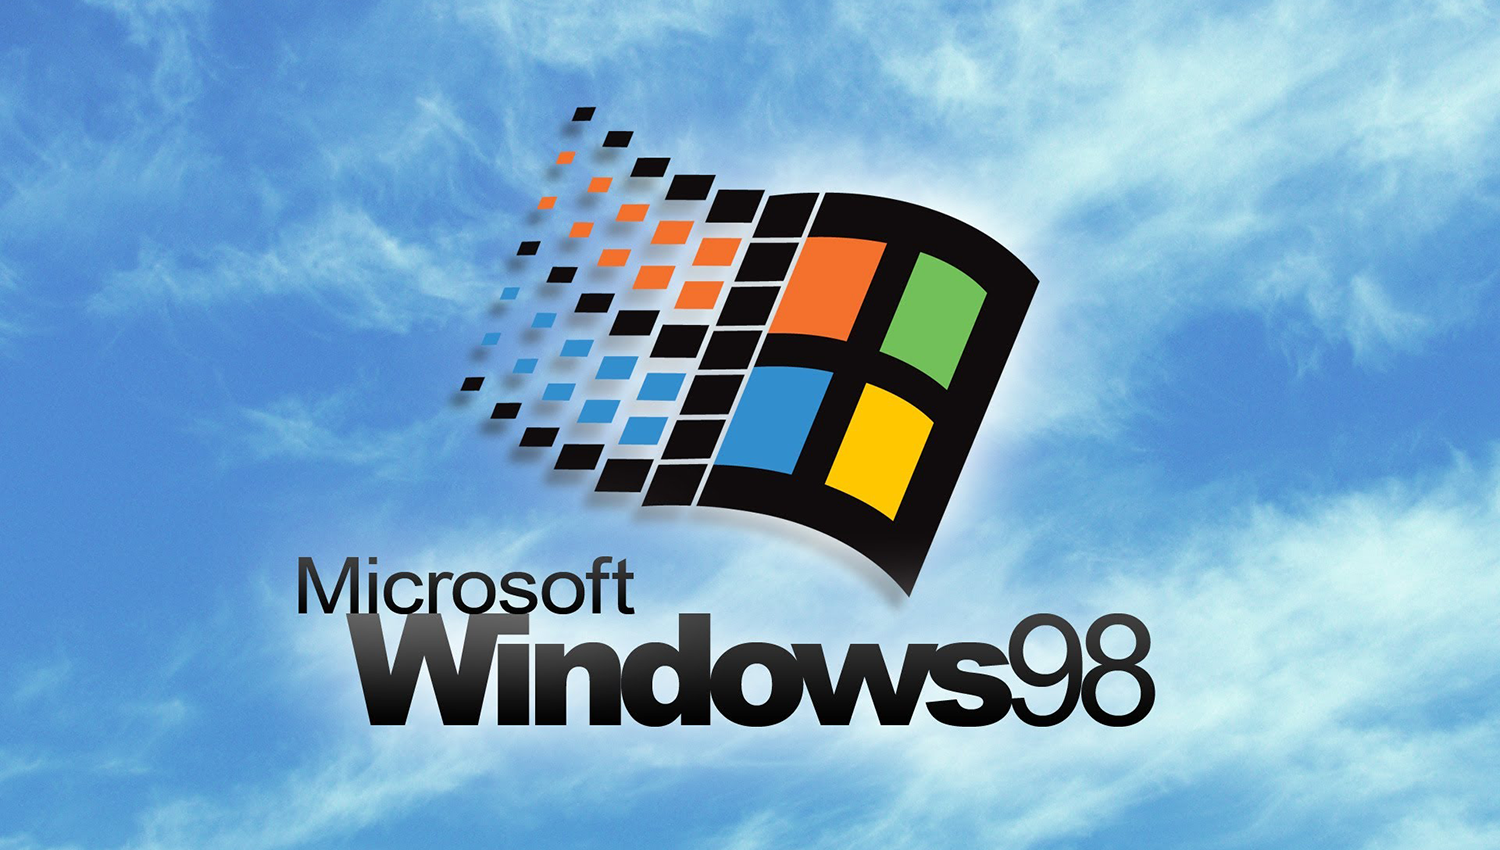 Church Computer Gets Long Awaited Upgrade To Windows 98 Microsoft Windows Windows 98 Microsoft Windows Operating System